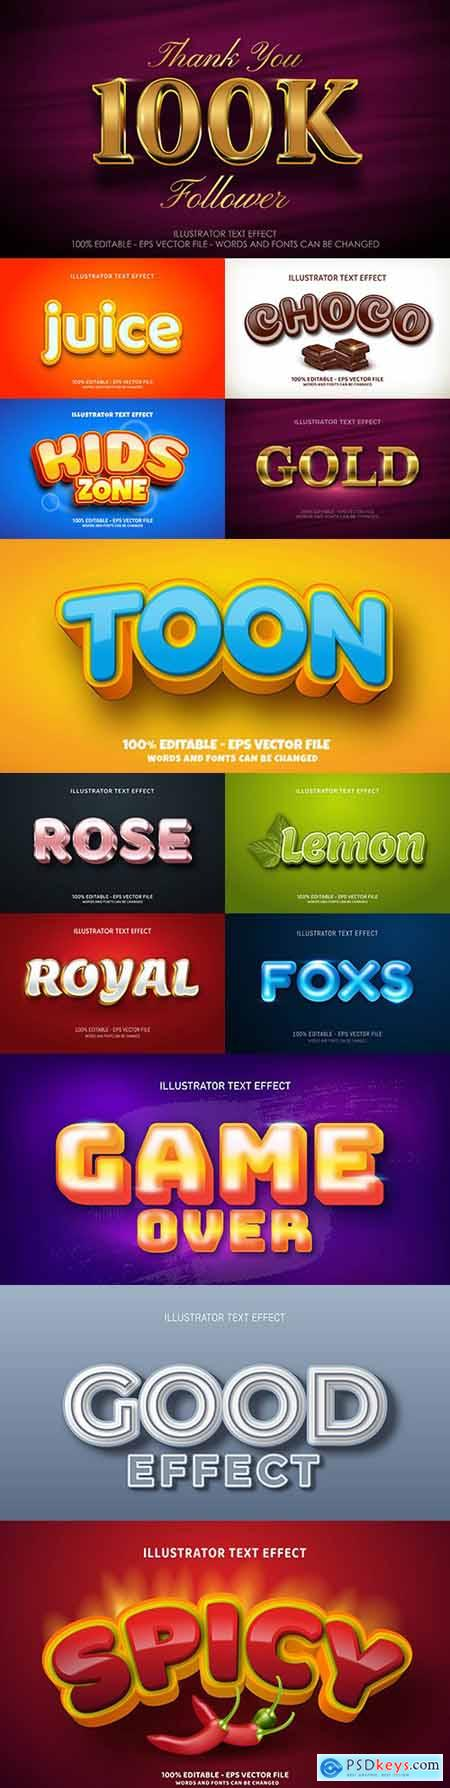 Editable font effect text collection illustration design 159